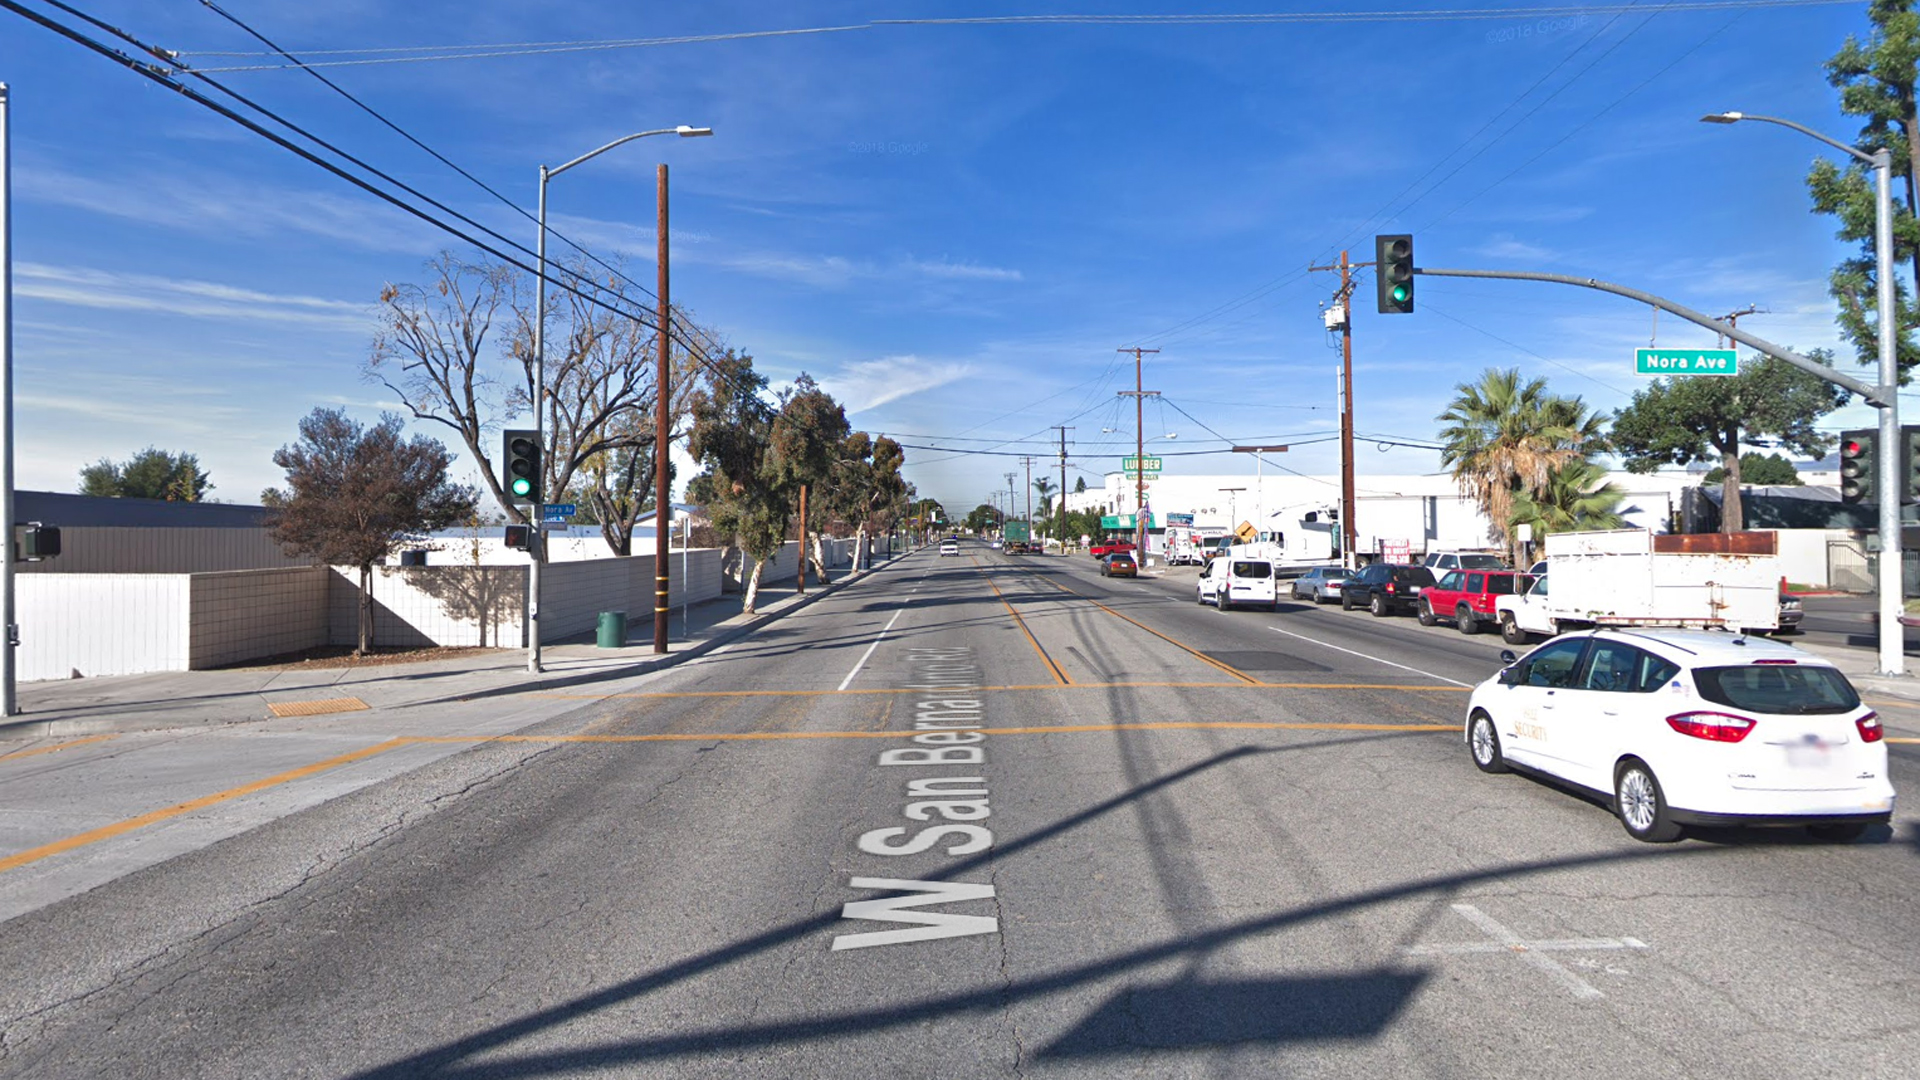 The intersection of San Bernardino Road and Nora Avenue, as pictured in a Google Street View image in February of 2018.